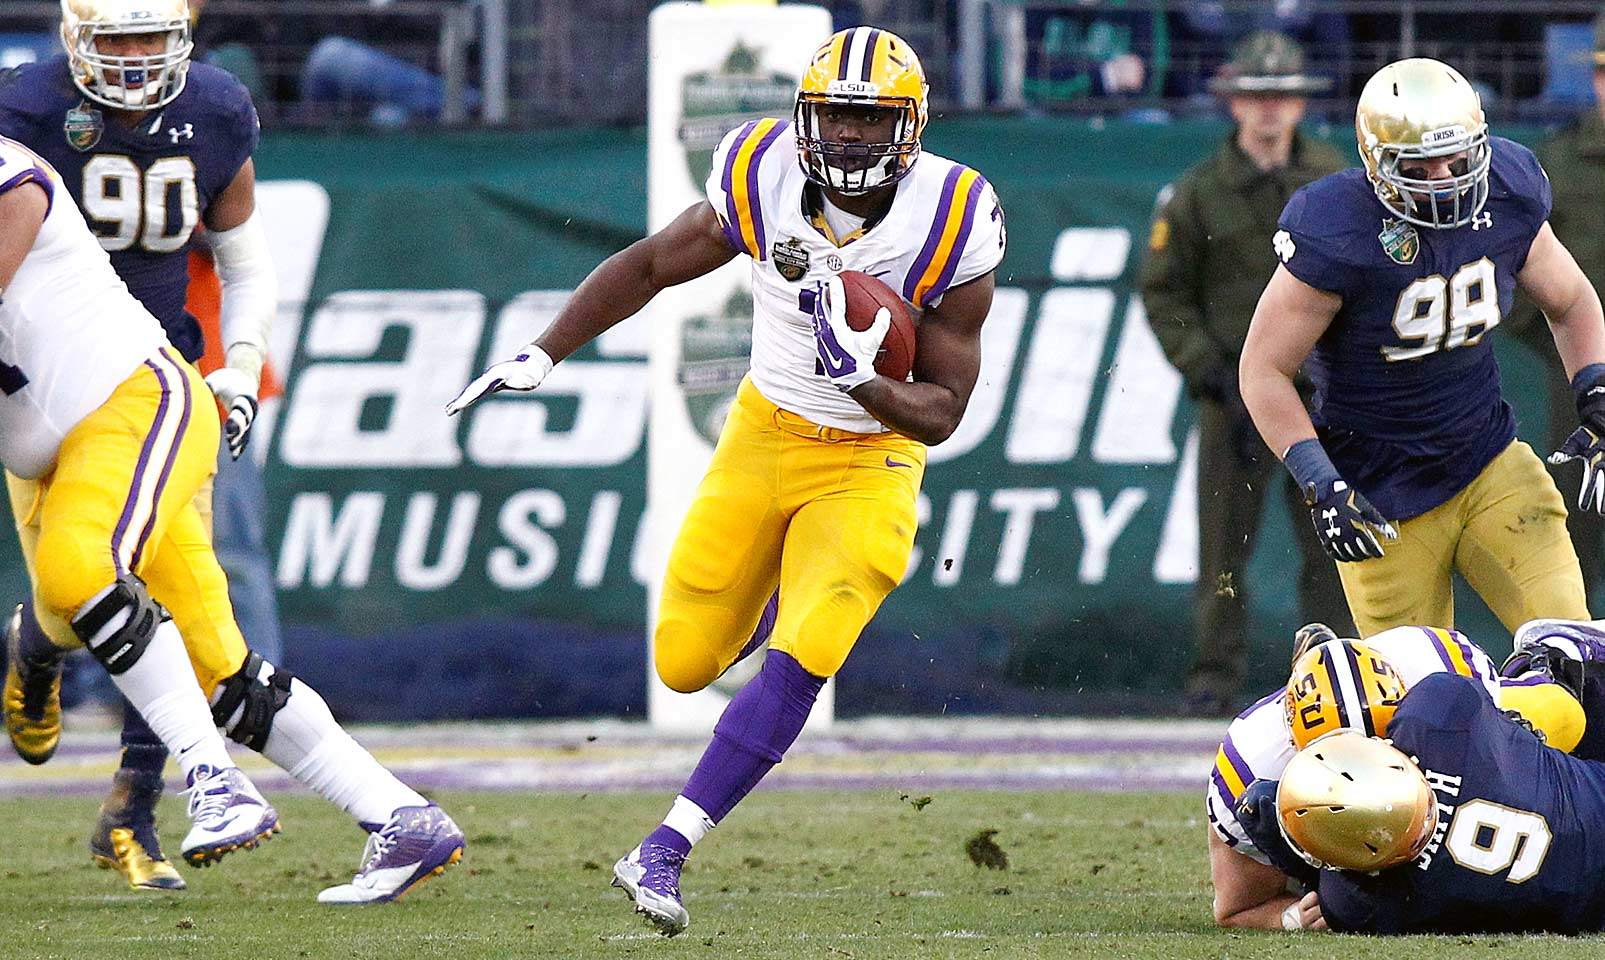 Fournette battled the pressure of immense hype on his way to a highly productive season in his true freshman campaign. The New Orleans native ran for 1,034 yards and 10 touchdowns for the Tigers and has barely scratched the surface of his potential.